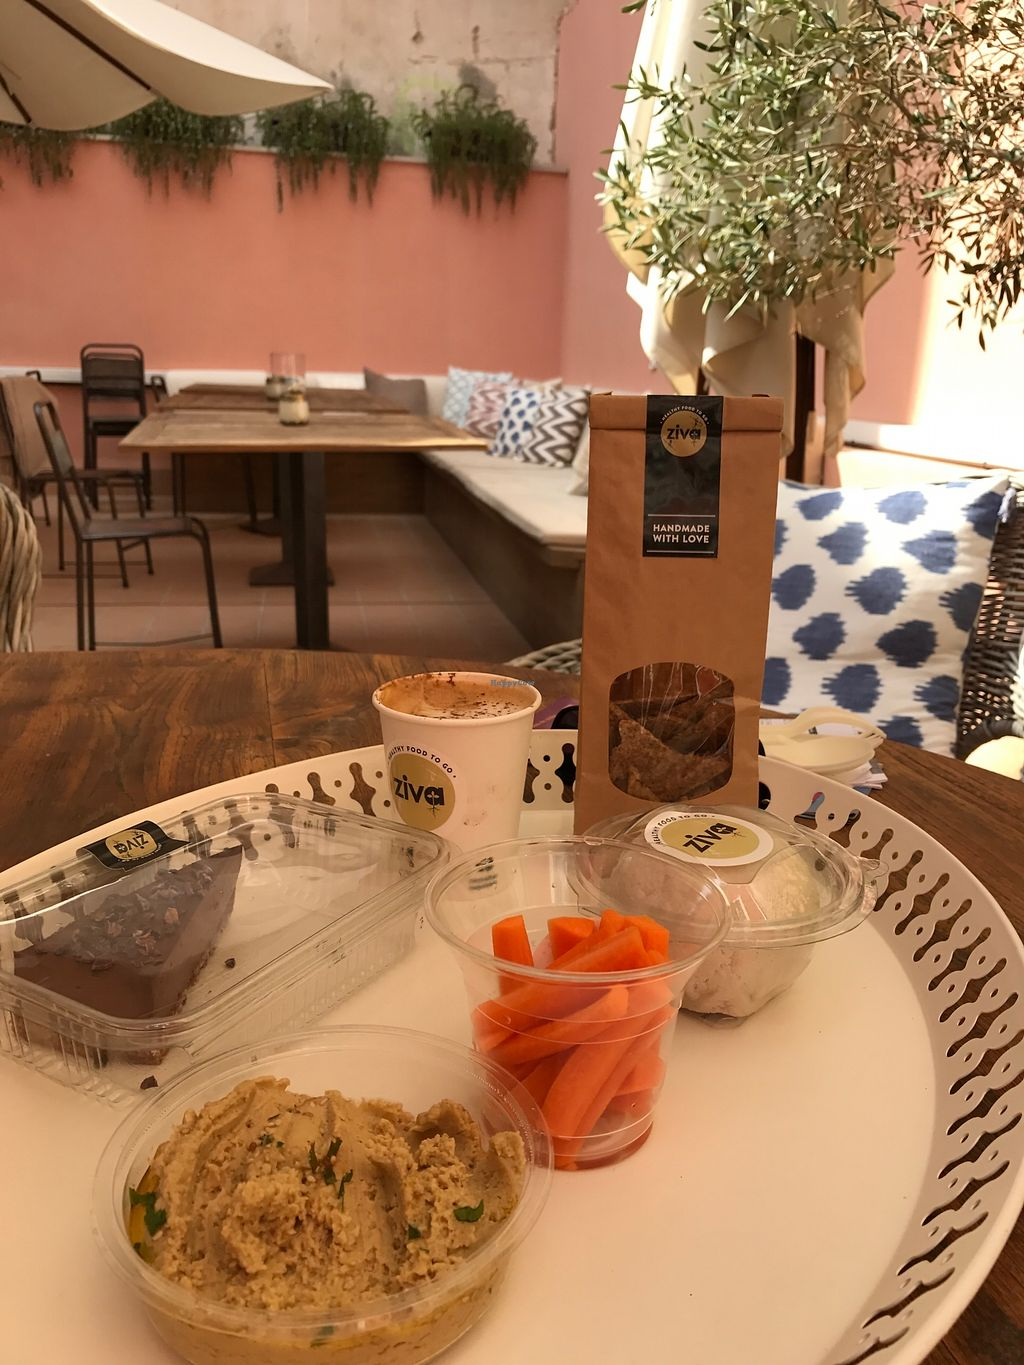 "Photo of Ziva To Go - Center  by <a href=""/members/profile/MaureenDelaney"">MaureenDelaney</a> <br/>Raw Chocolate cake, carrots, hummus, vegan cheese made of fermented almonds, raw crackers, cappucino with almond milk :) lovely place <br/> September 2, 2017  - <a href='/contact/abuse/image/83384/300054'>Report</a>"